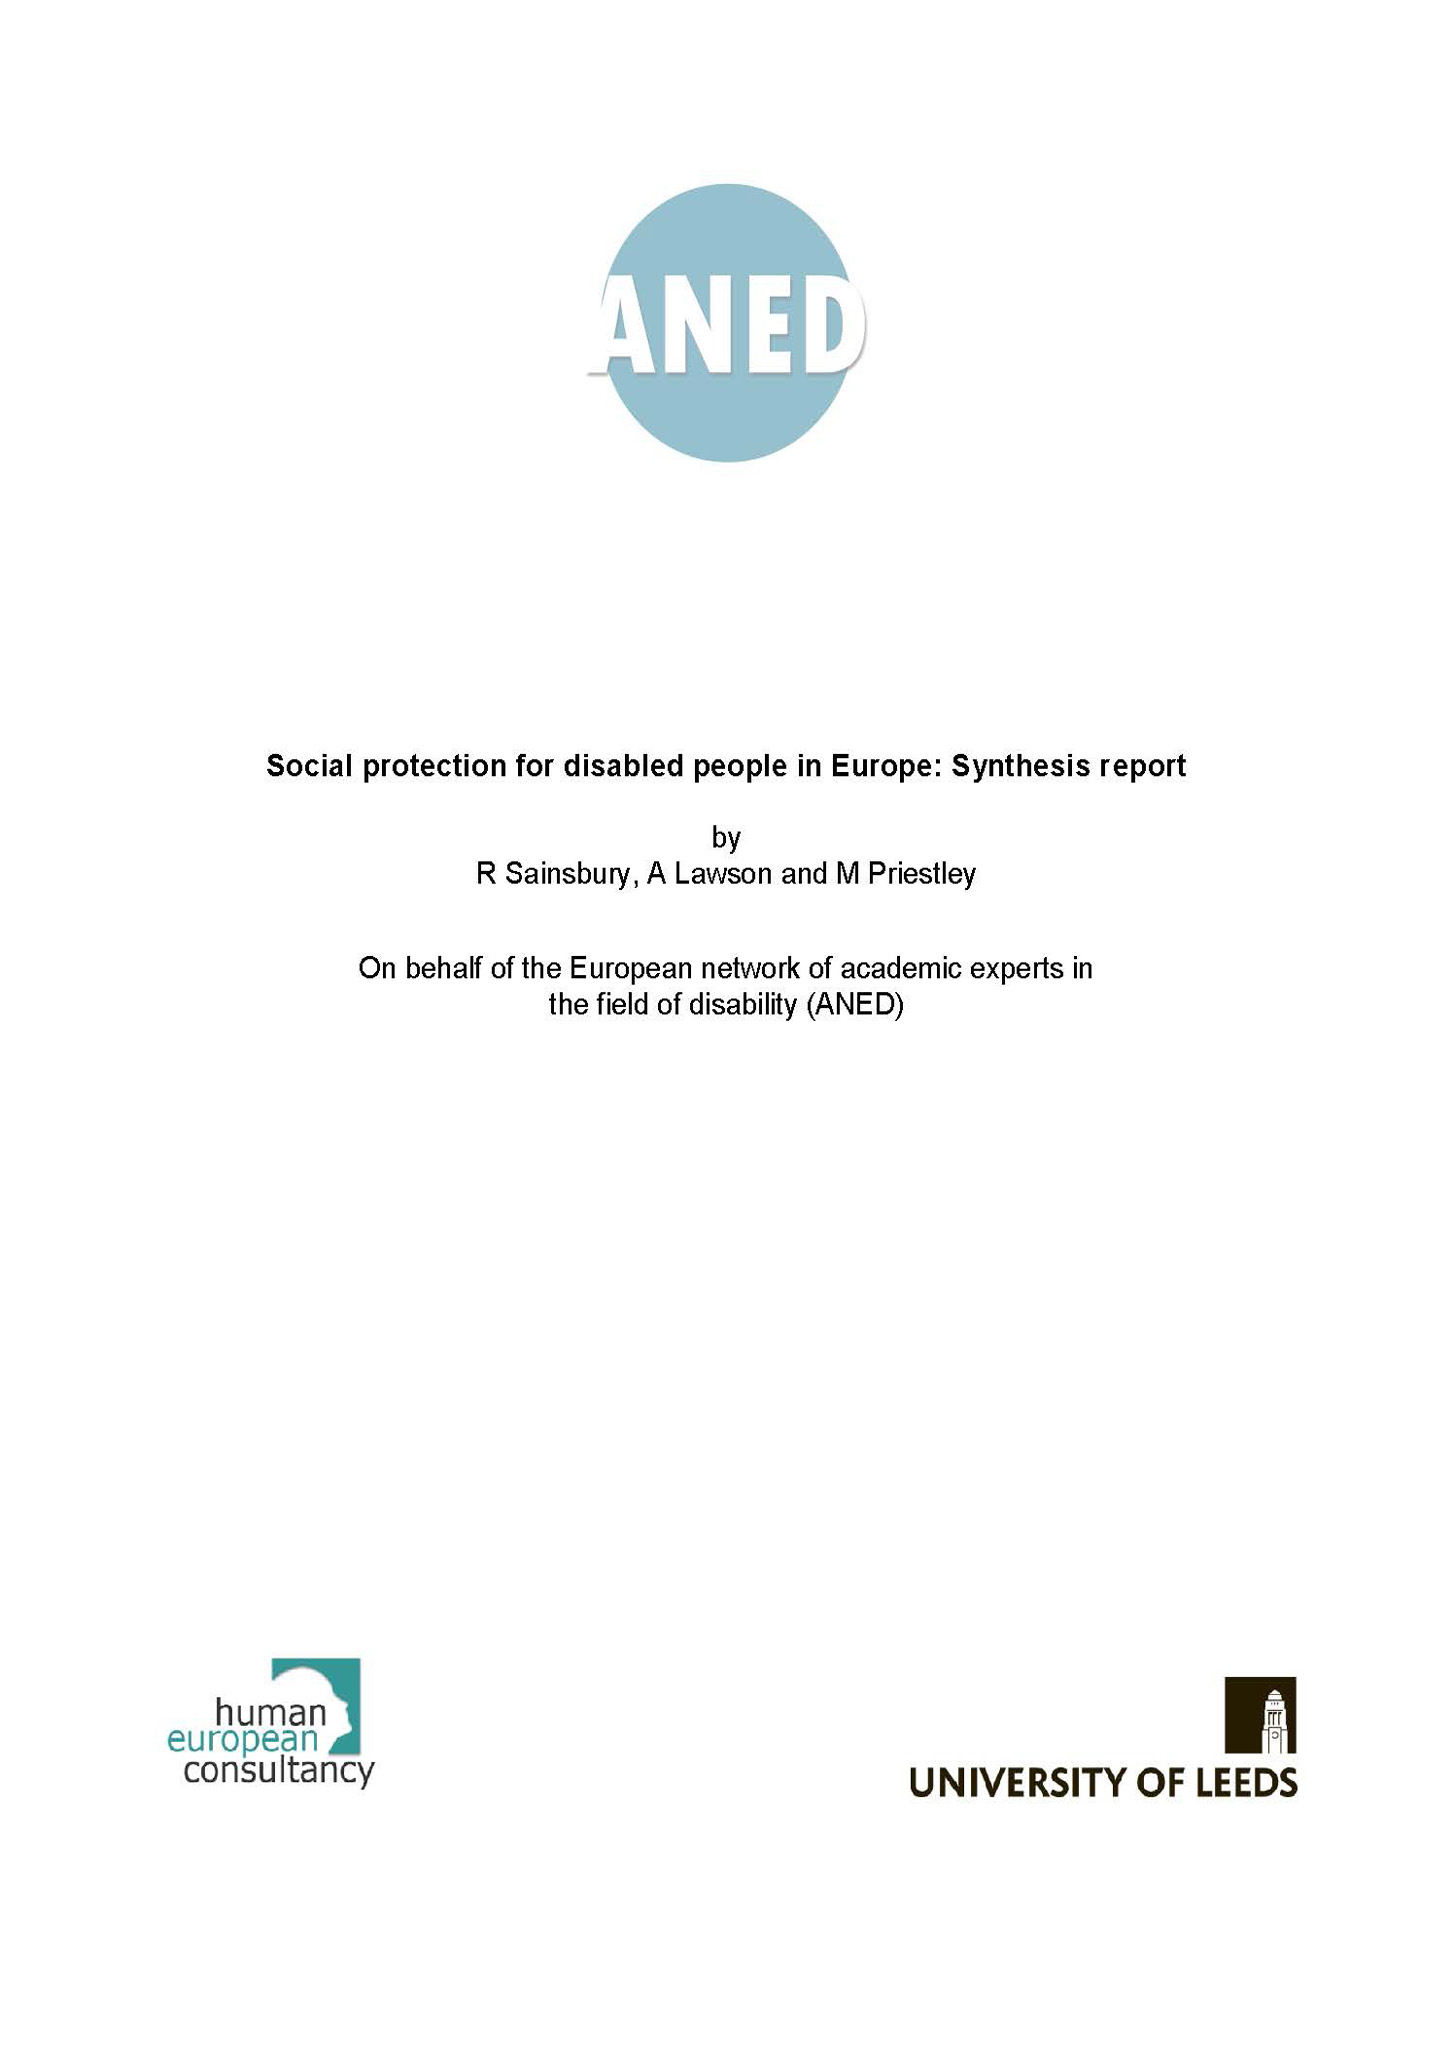 Social protection for disabled people in Europe: synthesis report